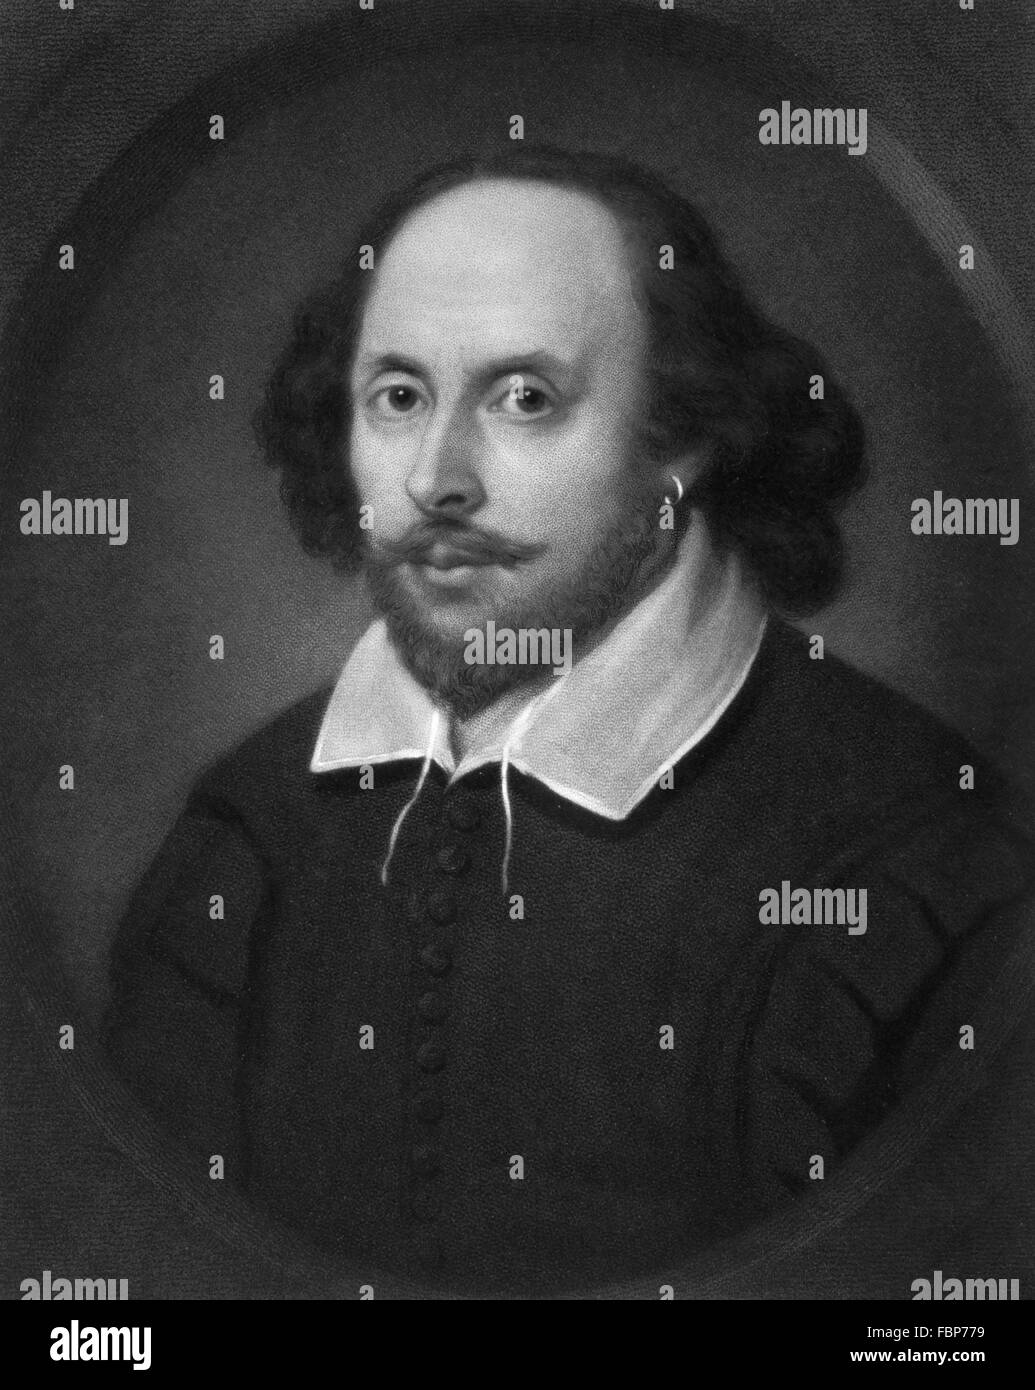 An 1849 engraving by Samuel Cousins from the 'Chandos Portrait' of William Shakespeare - Stock Image